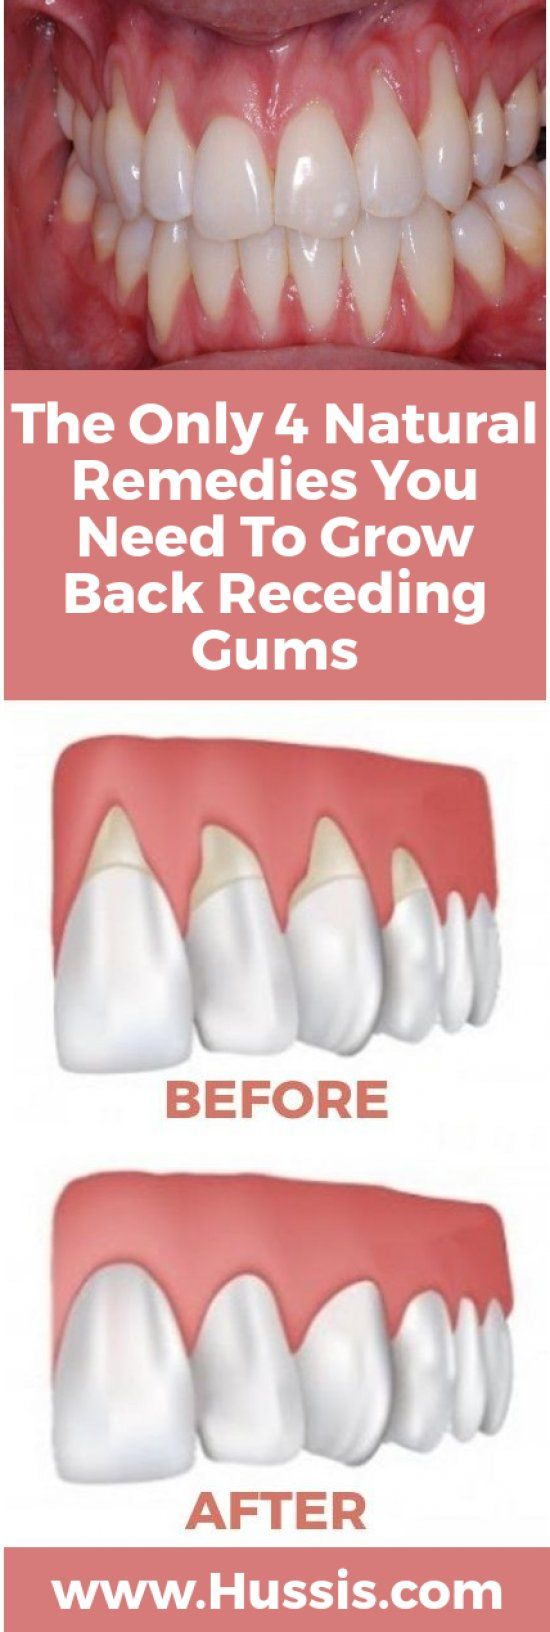 There are a lot of reasons why gums recede and it can become quite a health problem if this happens. If you are experiencing receding gums then you have found a great article to read. Go to the Next Page find 4 of the best home natural remedies to help grow back your receding gums. Your gums …